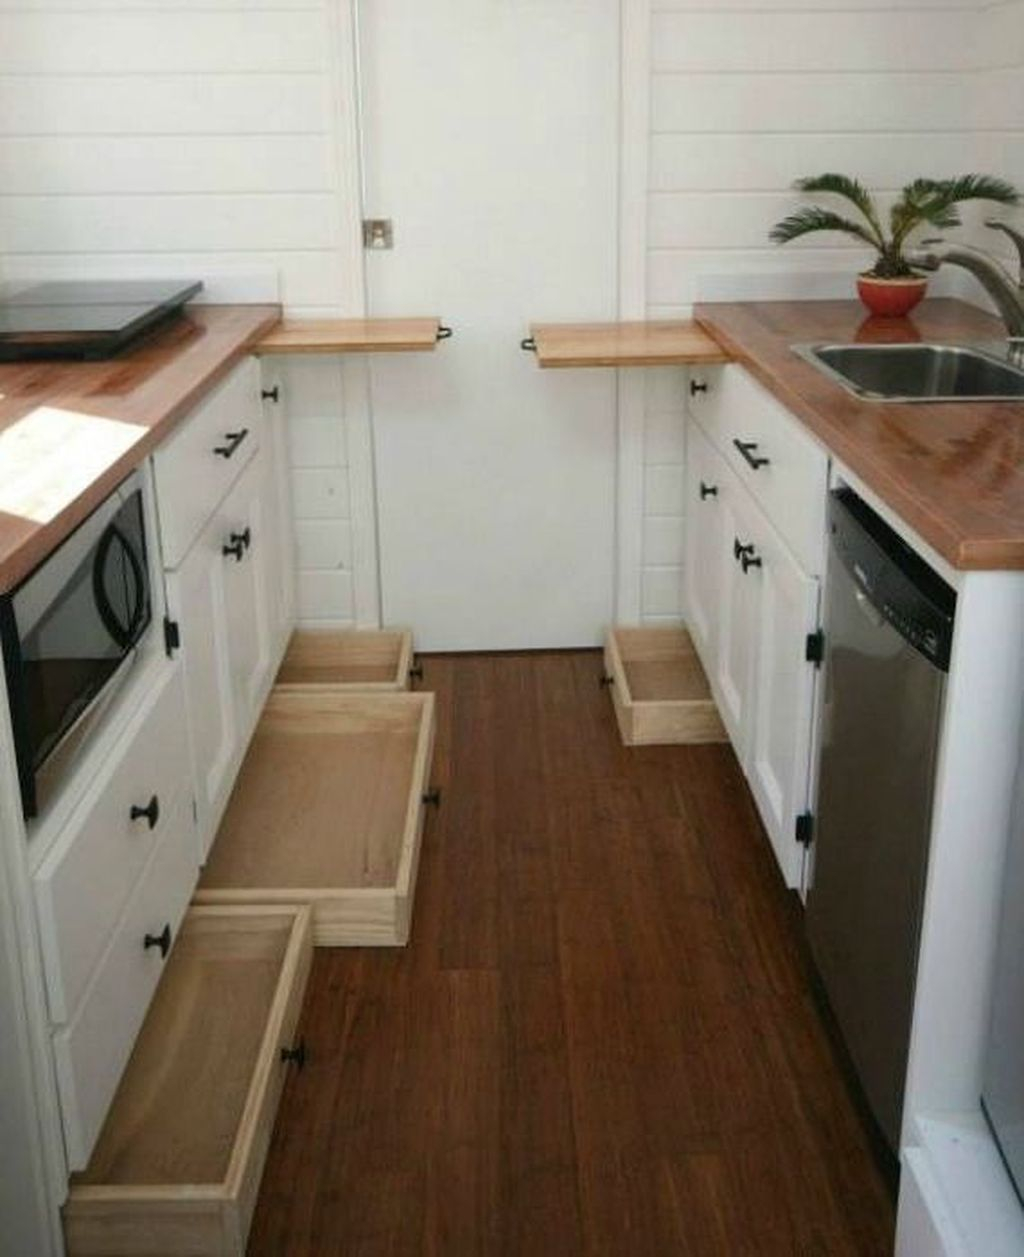 Best Tiny Kitchen Design Ideas For Your Small Space Inspiration 13